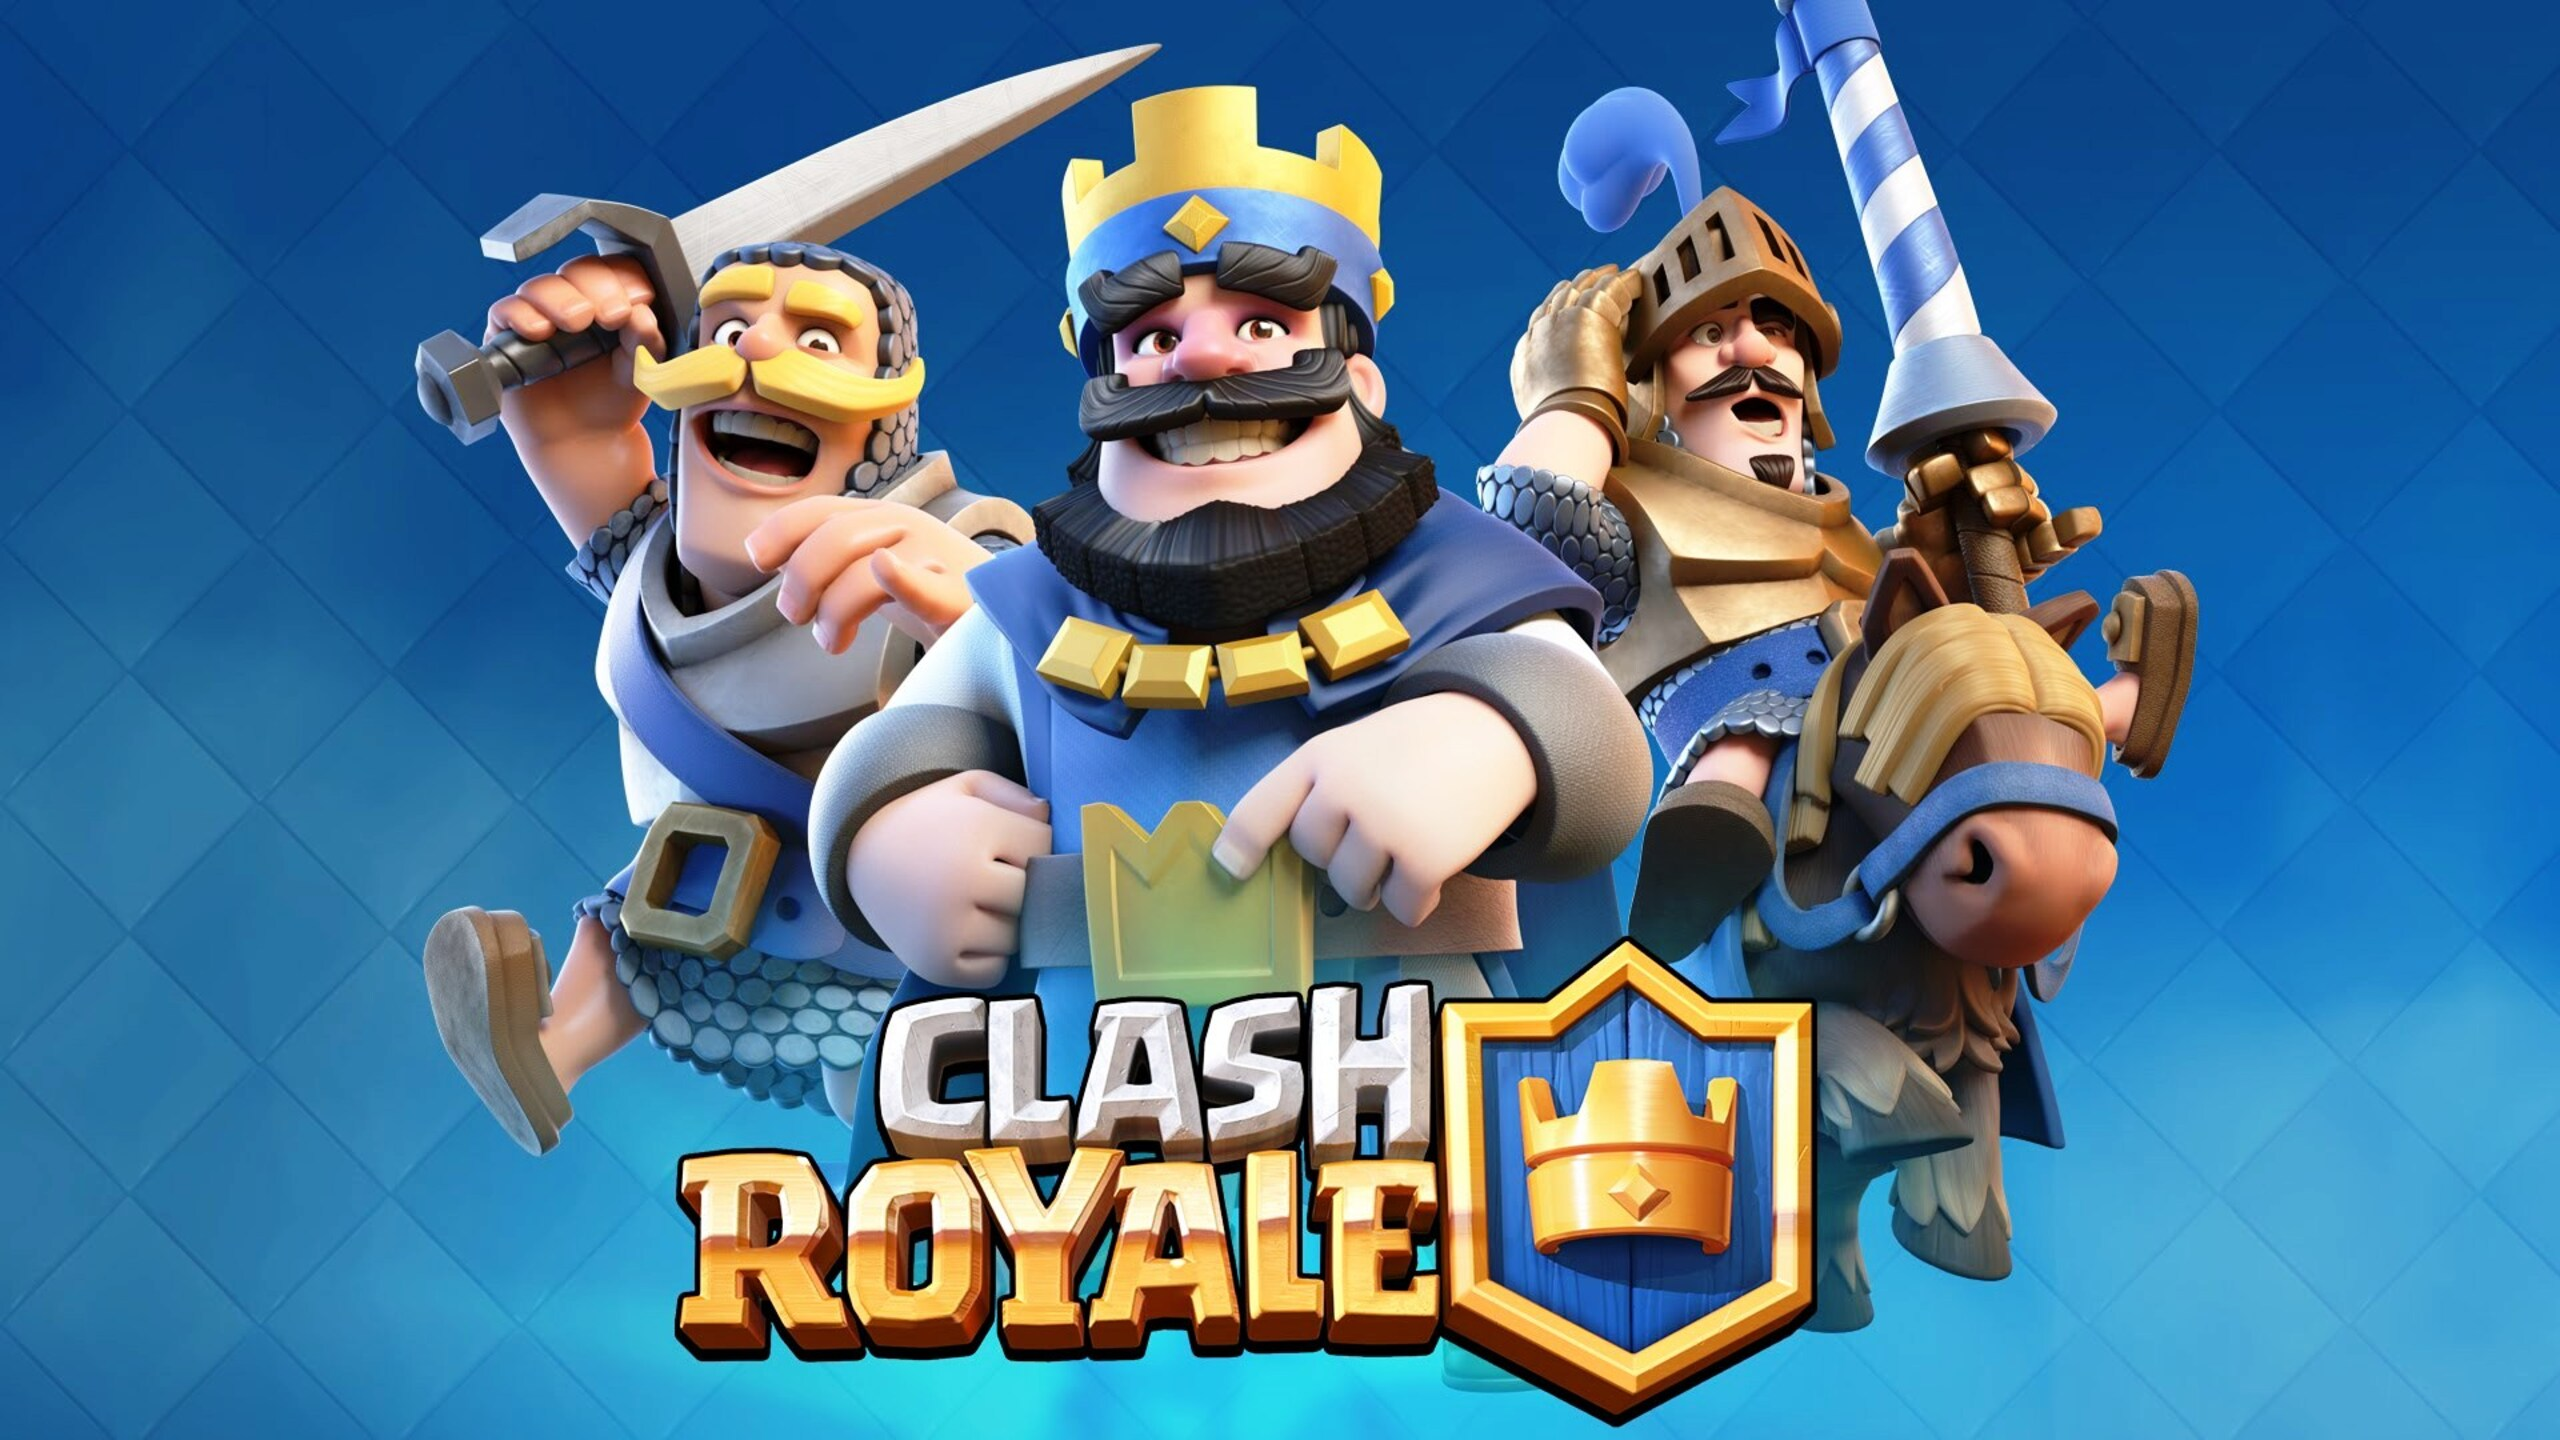 2560x1440 supercell clash royale hd 1440p resolution hd 4k wallpapers images backgrounds - Clash royale 2560x1440 ...